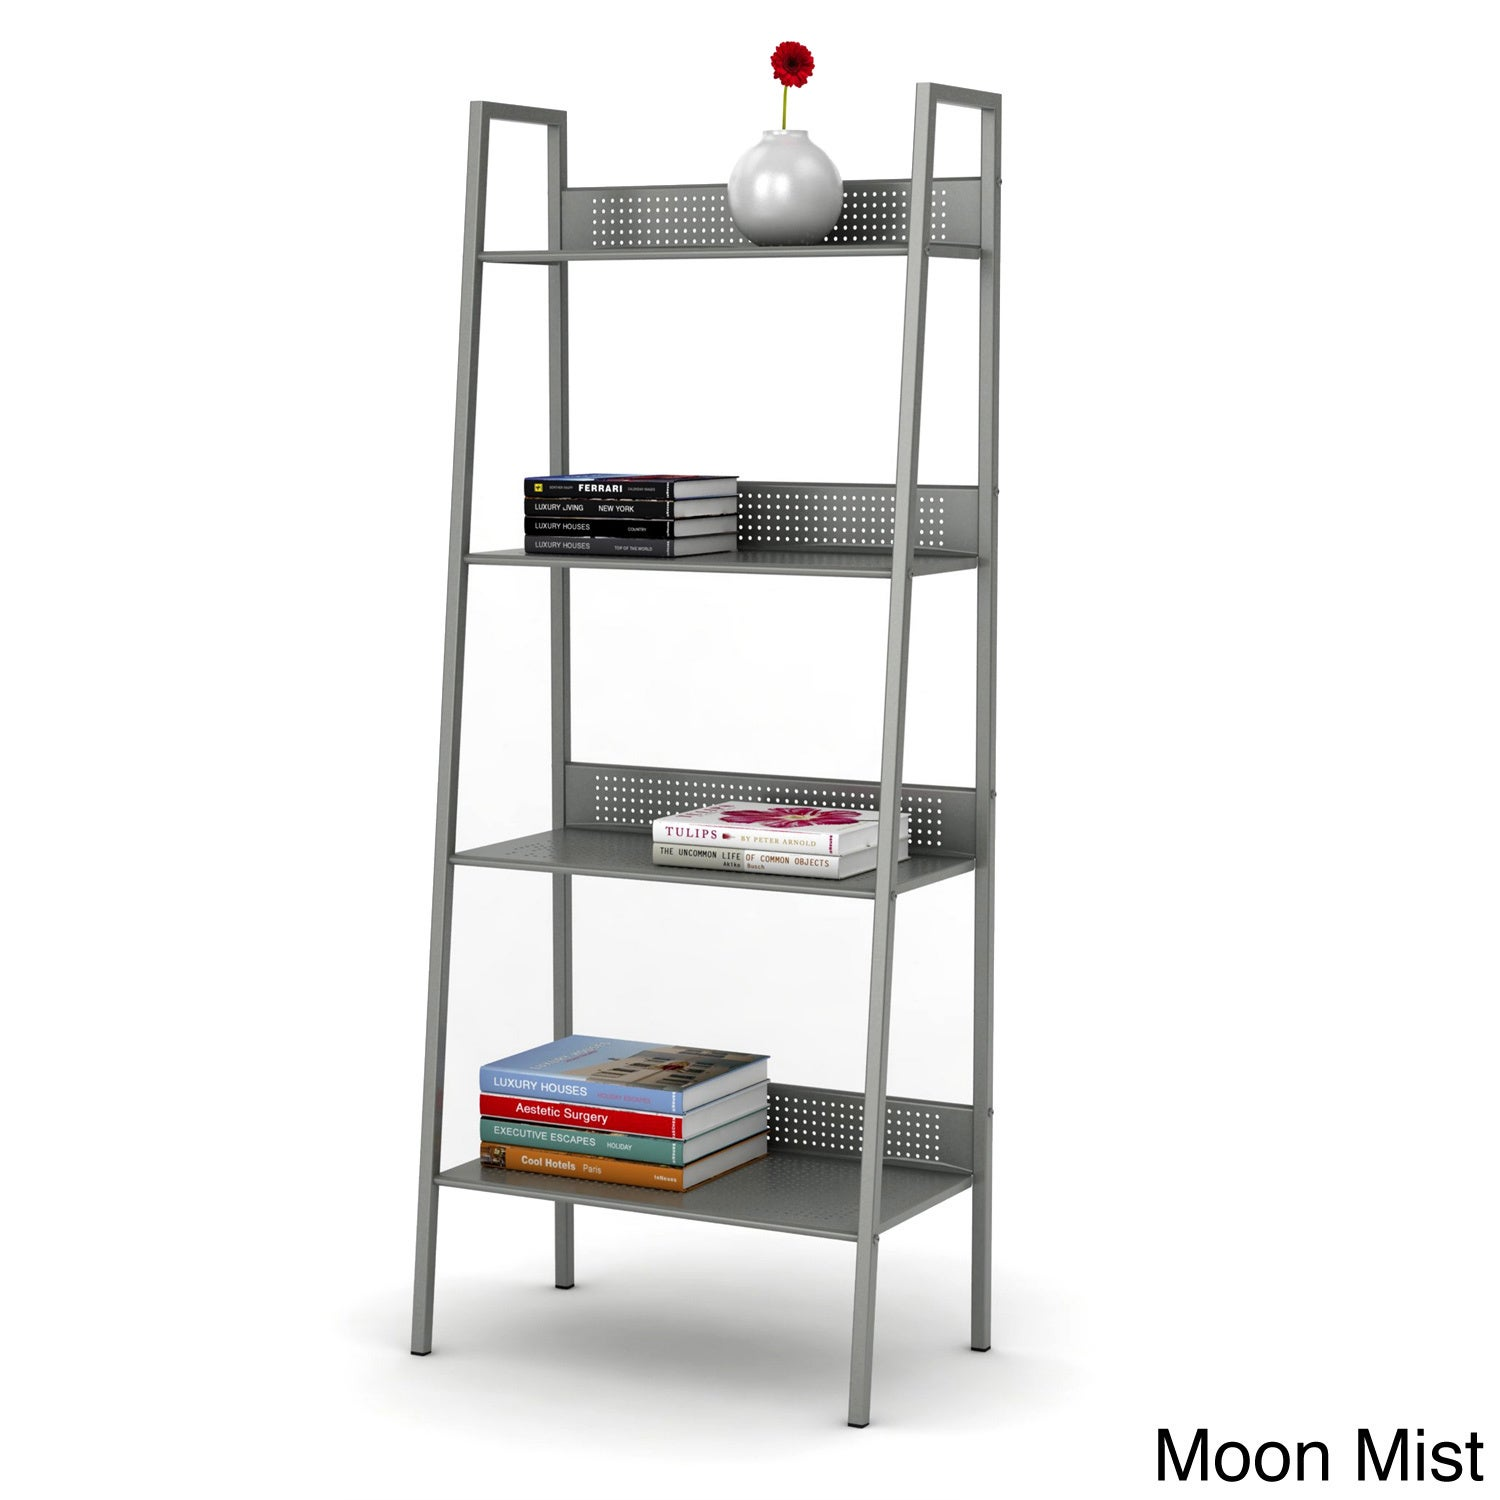 DarLiving urb Space 4-tier Metal Angled Ladder Shelving (...